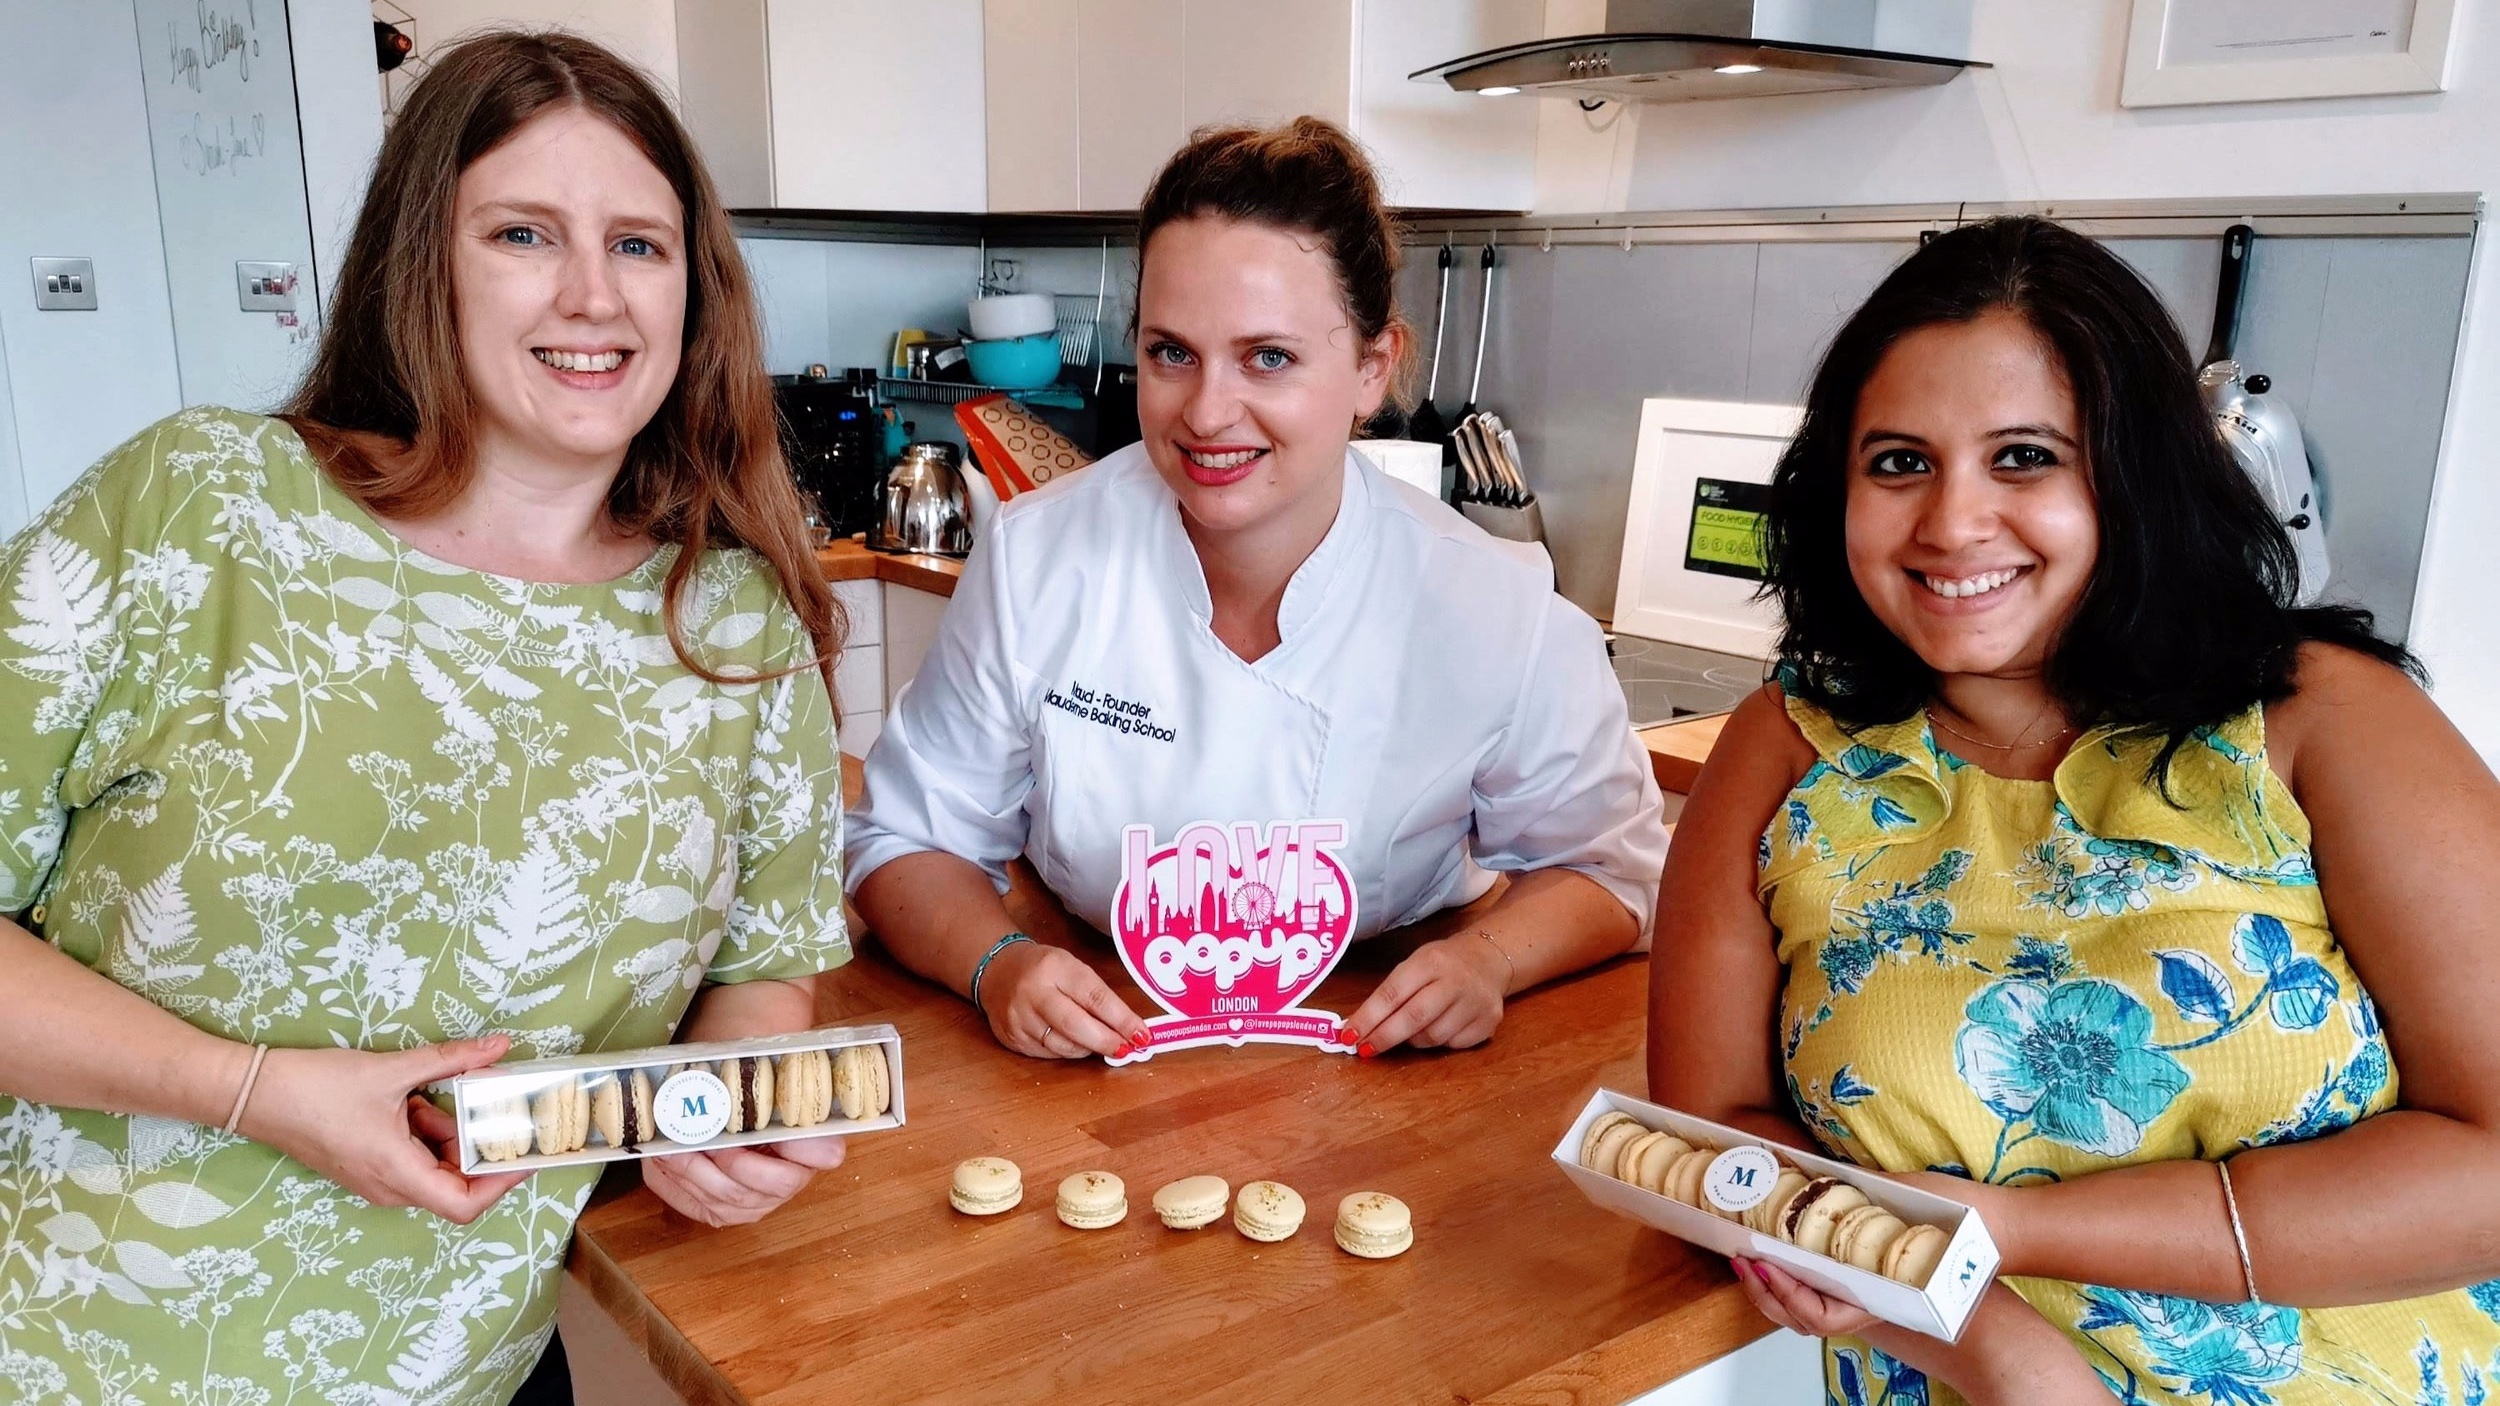 Happy customers at Baking Class in London